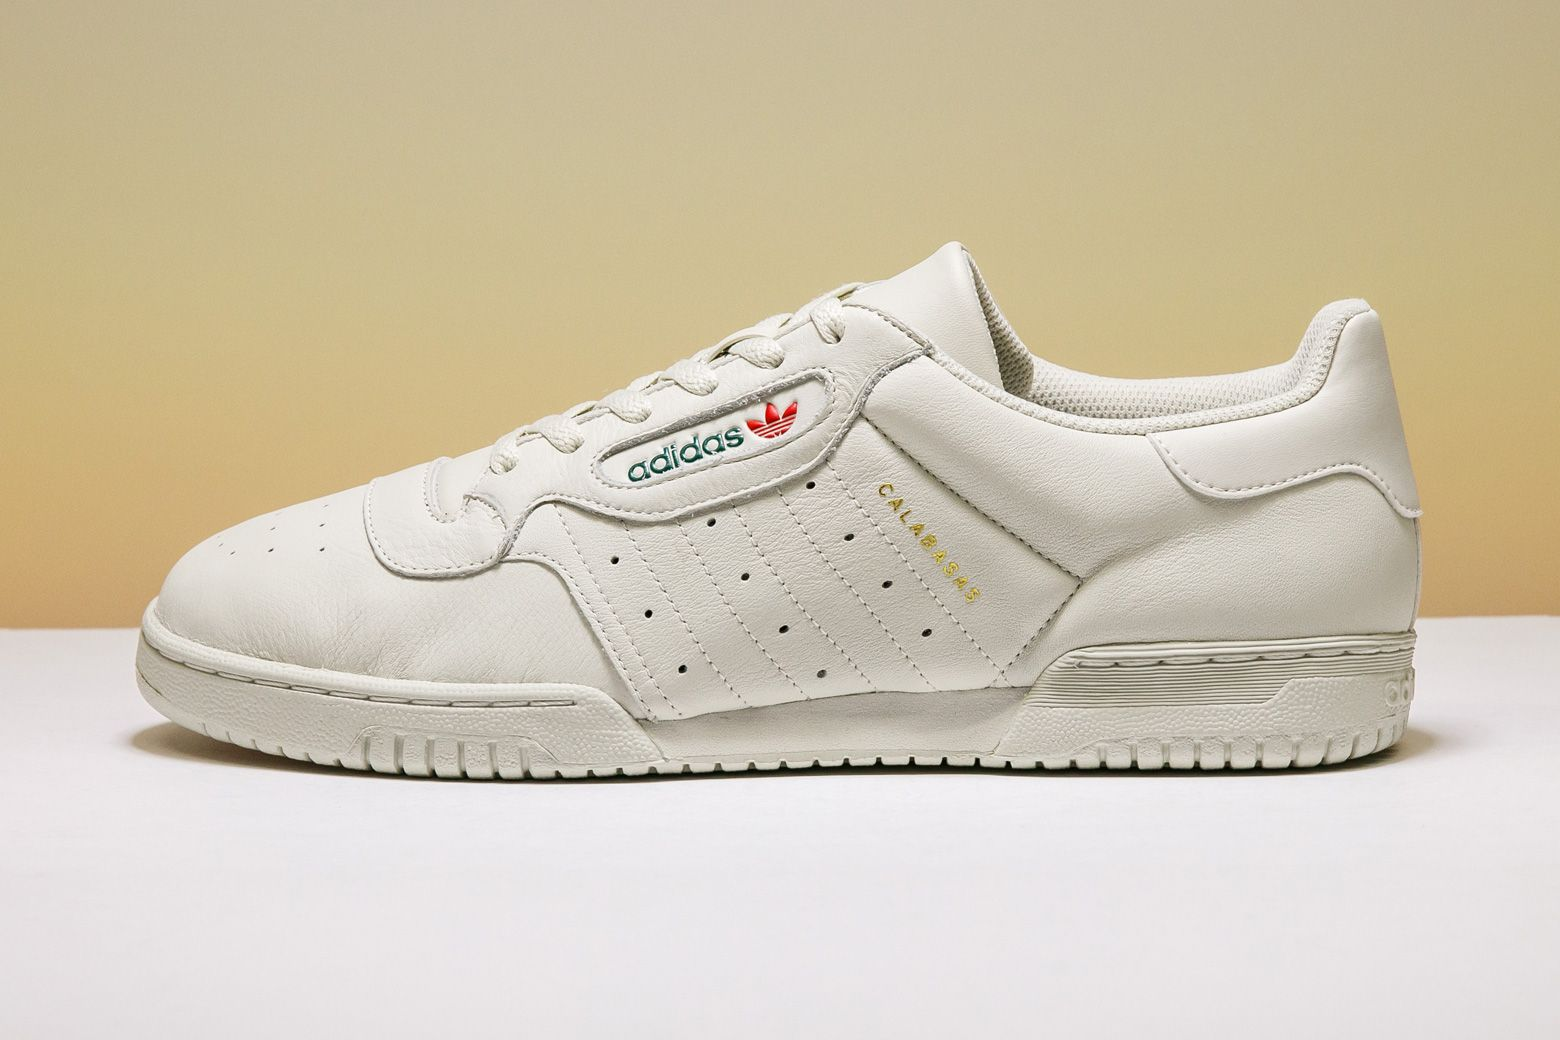 d96559fd3ee The adidas Yeezy Powerphase